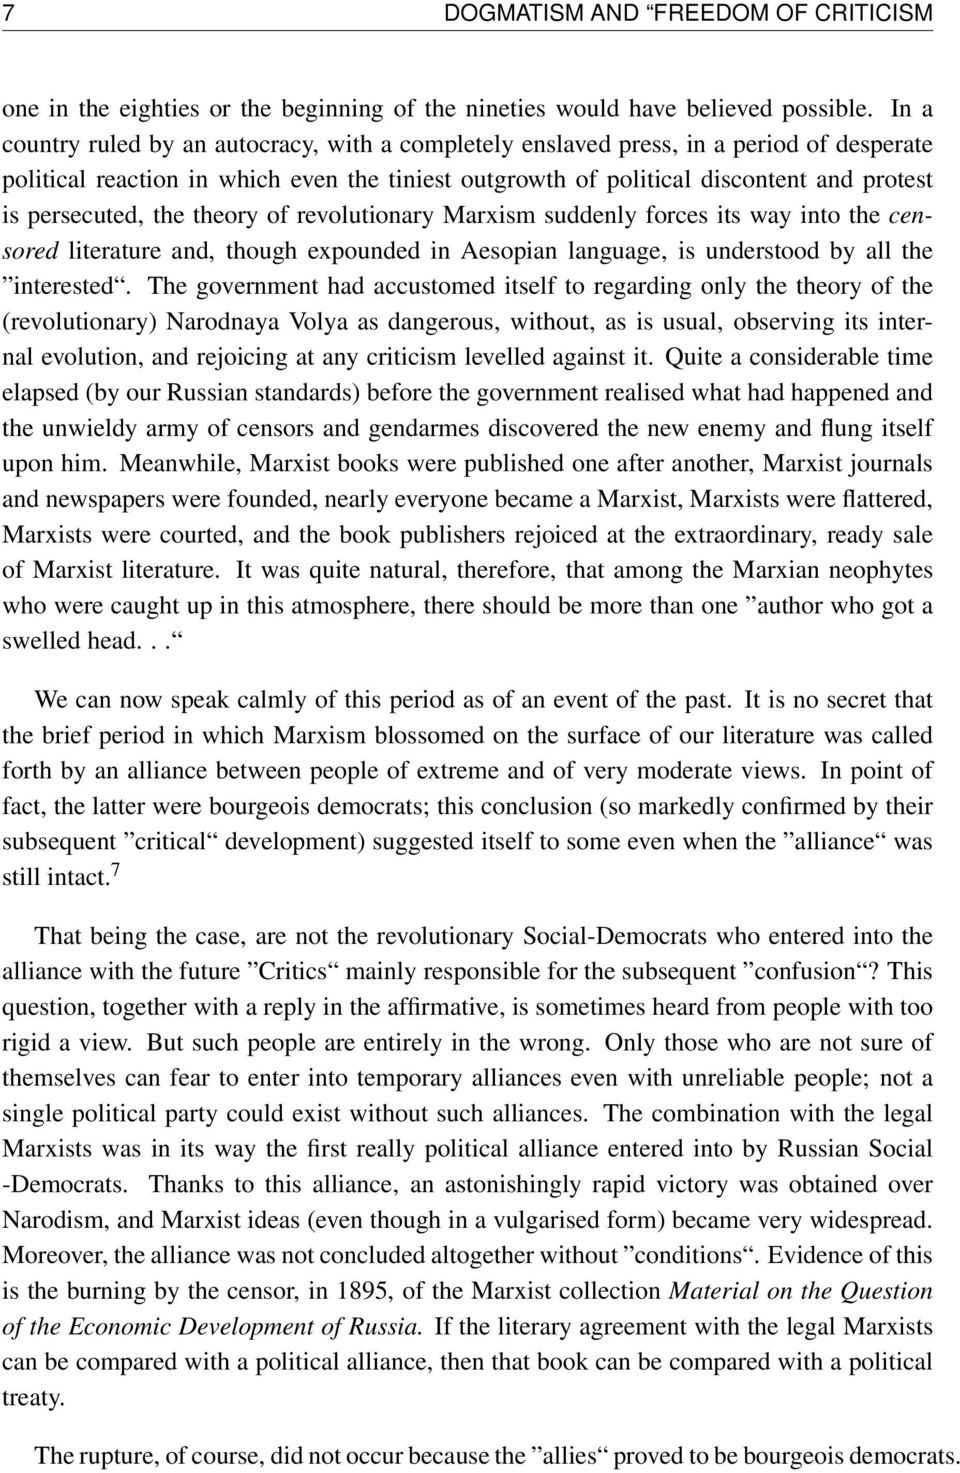 persecuted, the theory of revolutionary Marxism suddenly forces its way into the censored literature and, though expounded in Aesopian language, is understood by all the interested.